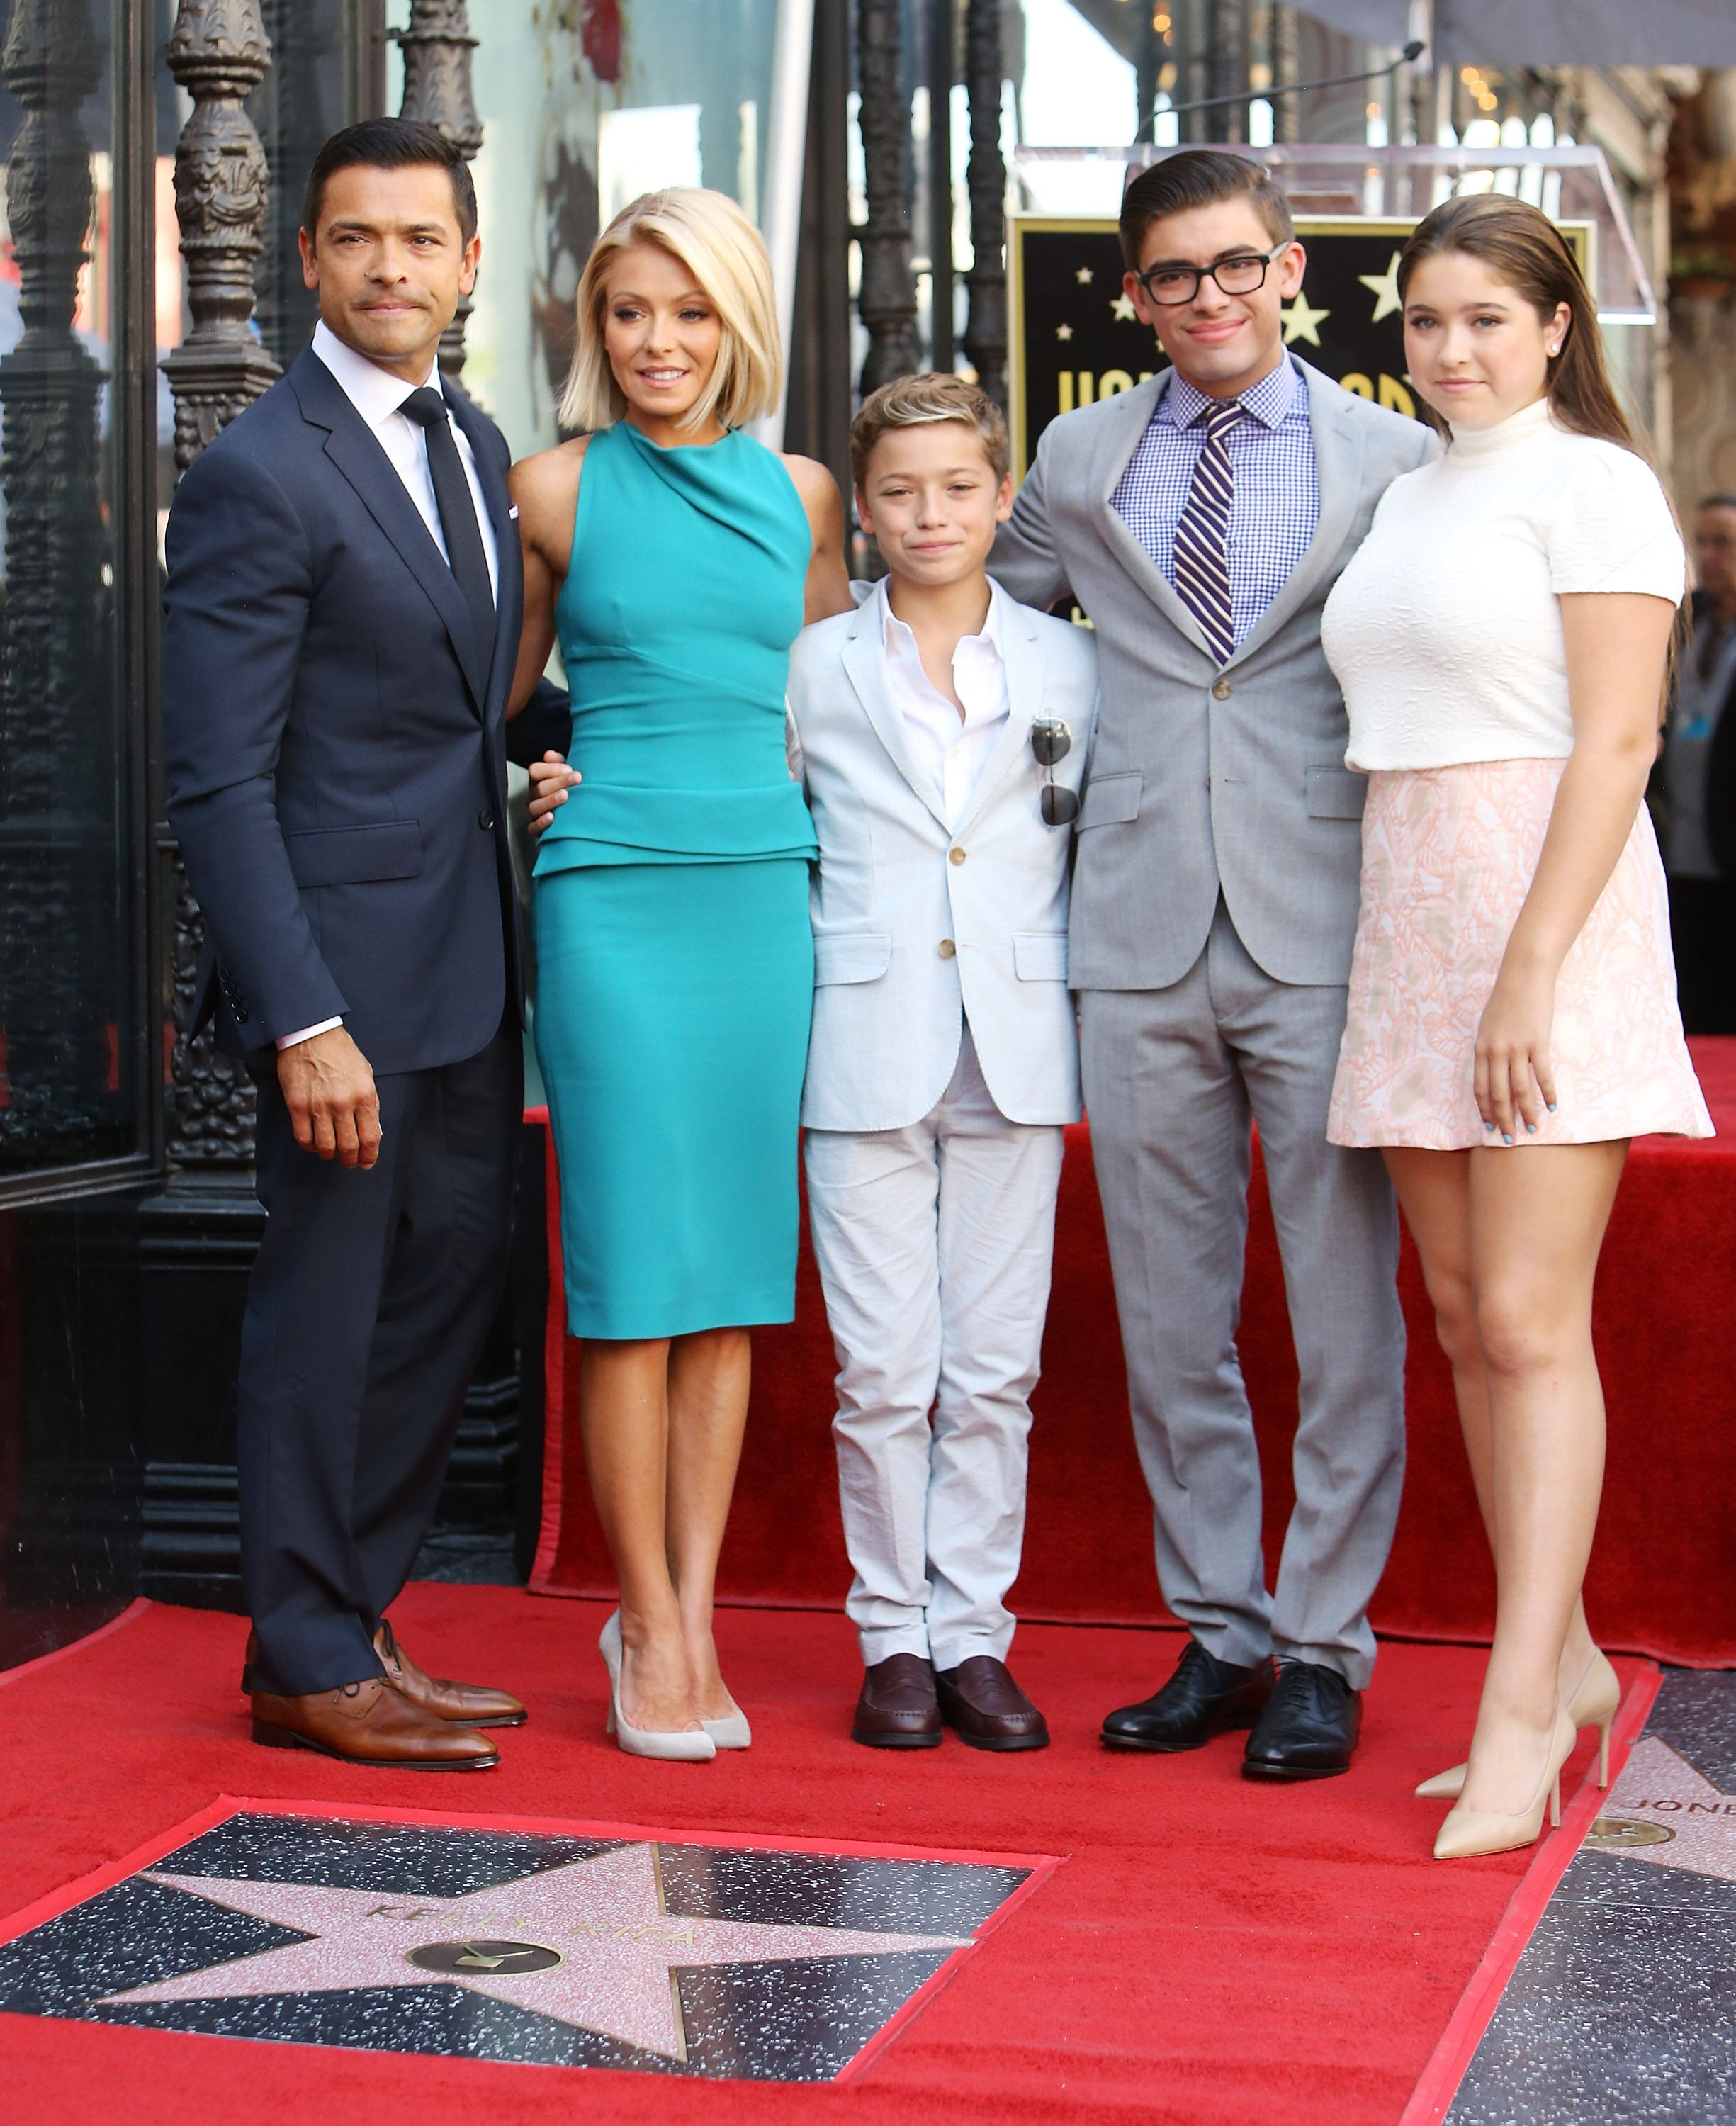 Kelly Ripa And Mark Consuelos' Kids Look SO Much Like Them